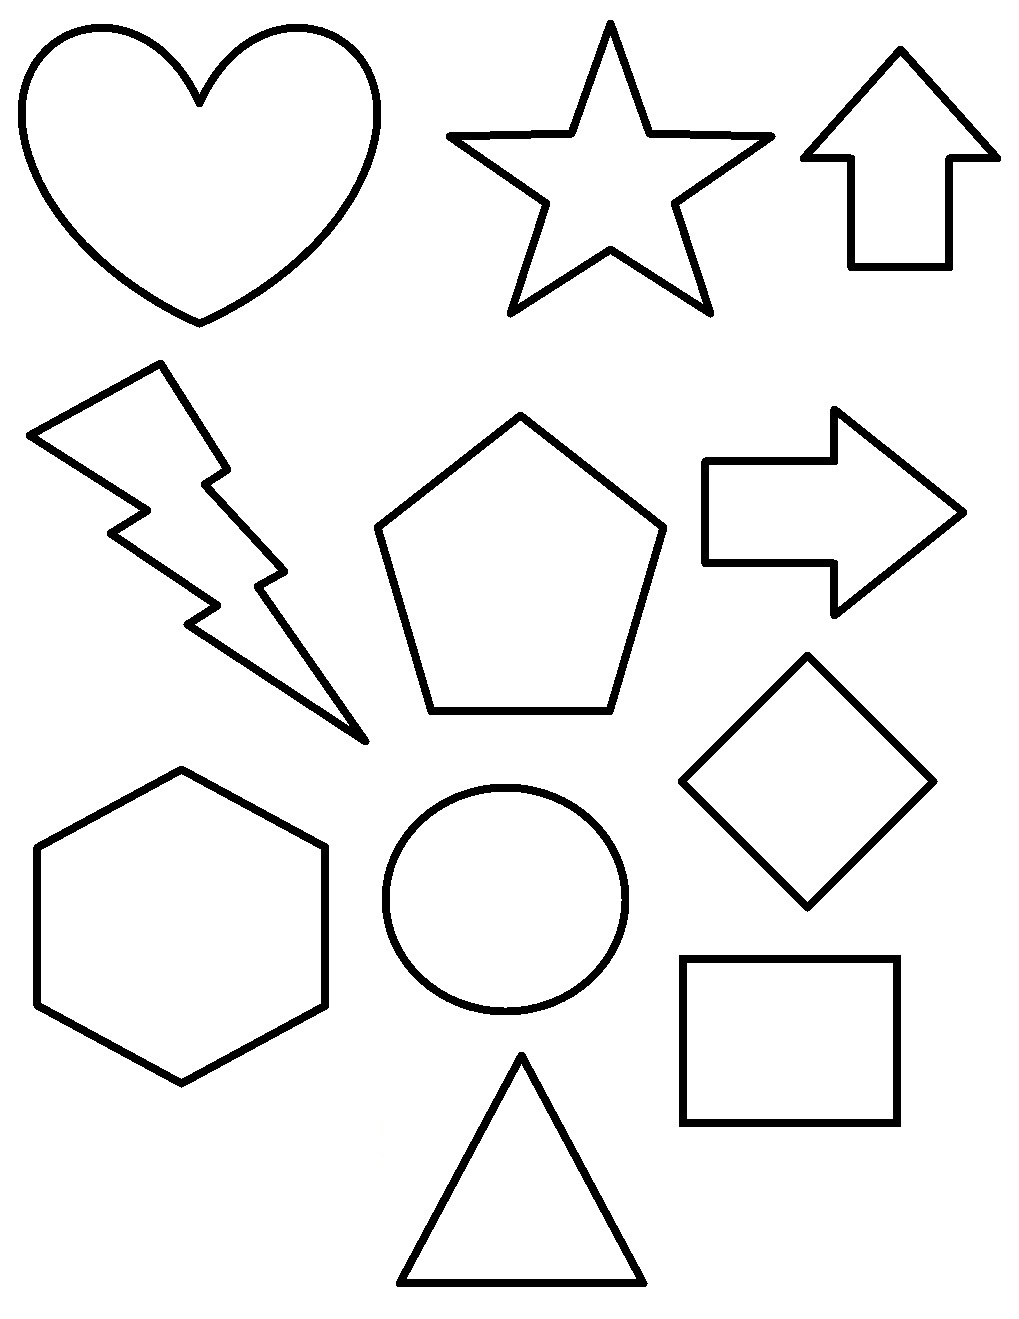 Free Printable Shapes Coloring Pages For Kids